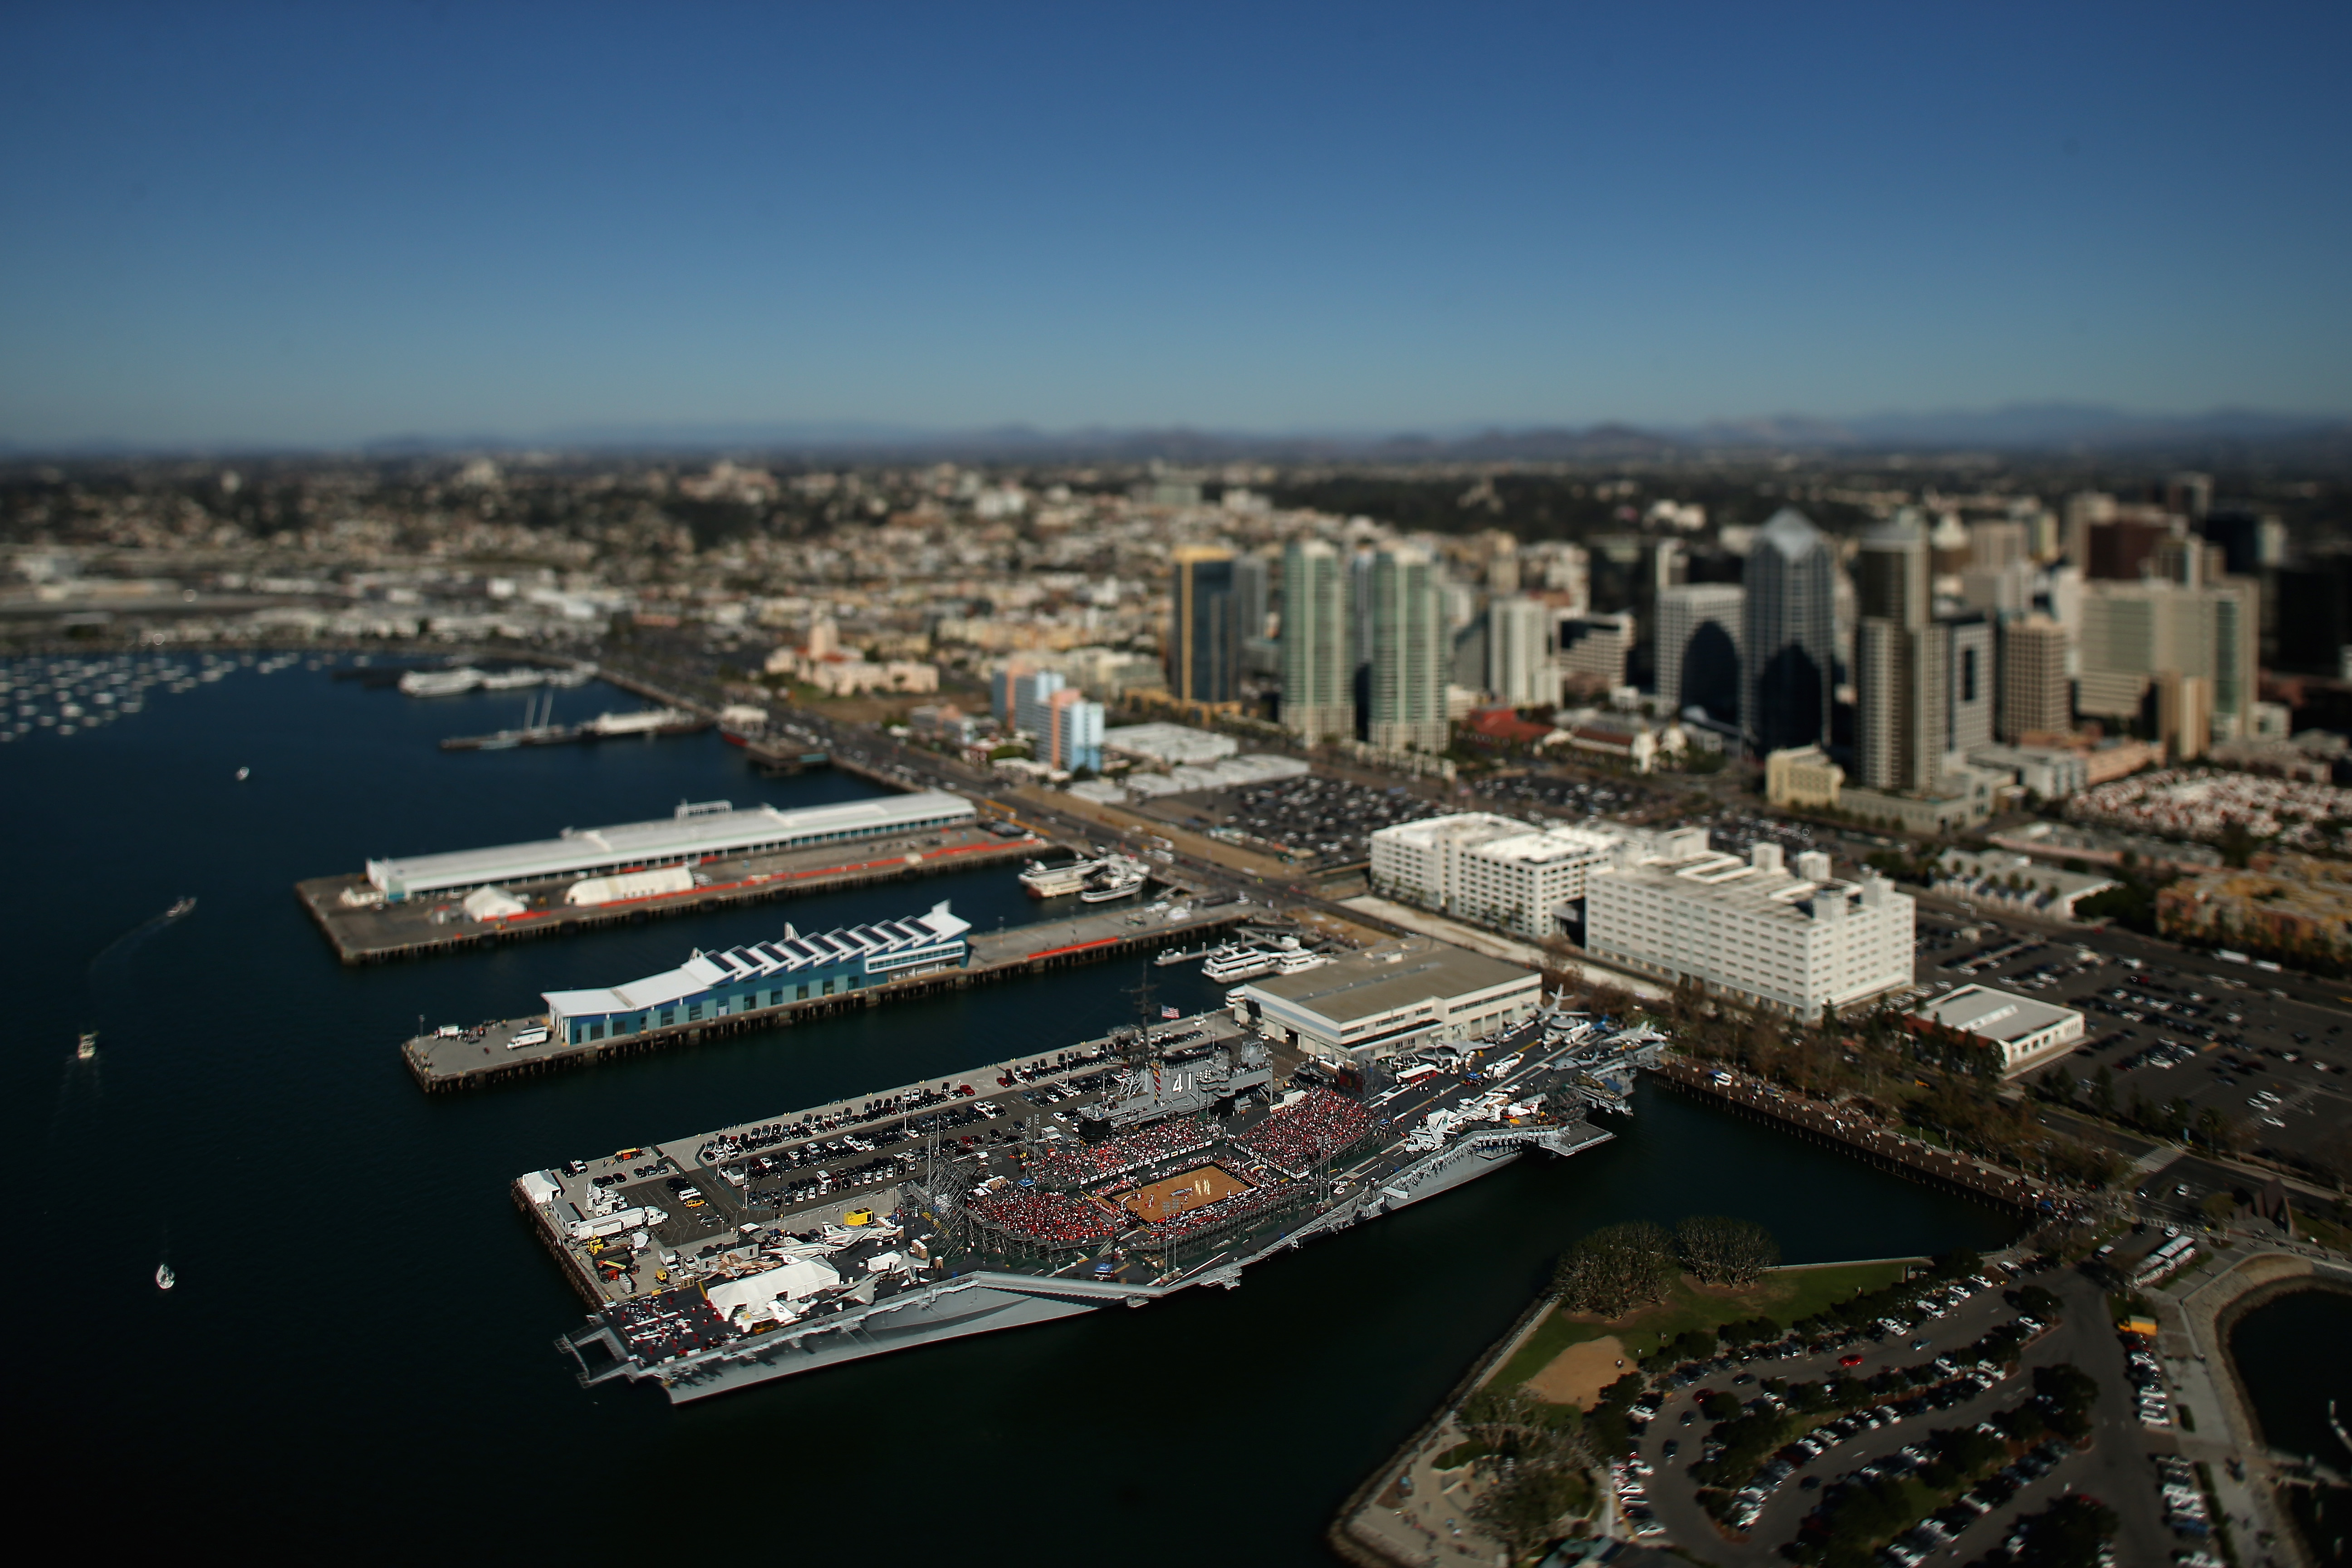 The USS Midway hosting a basketball game.